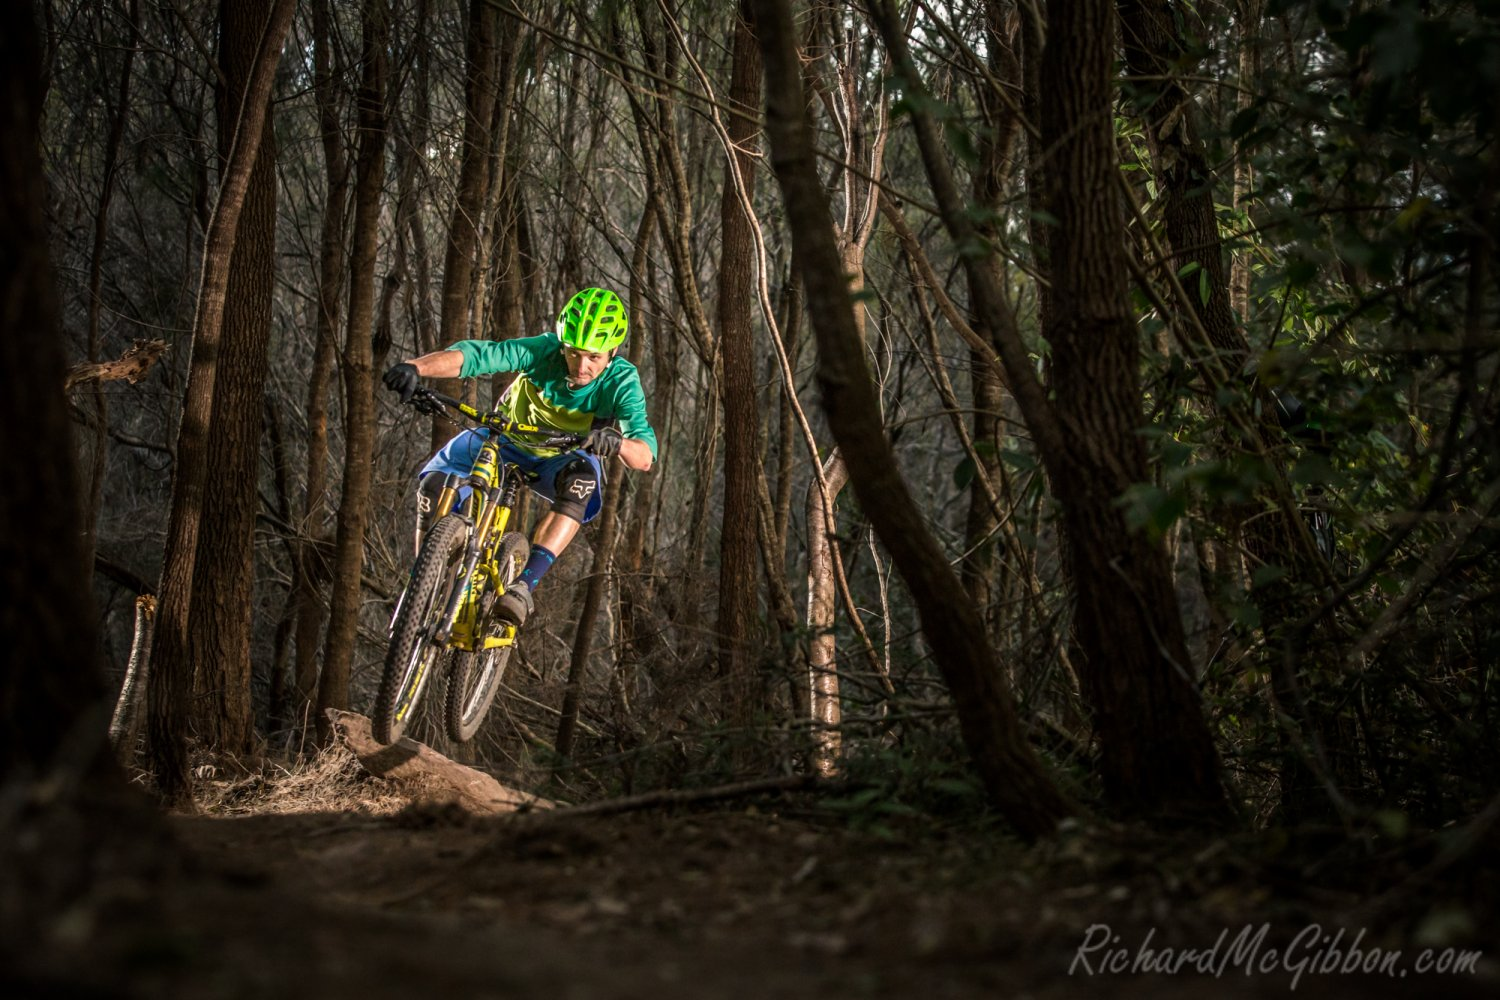 Jason Dreggs: Mountainbike